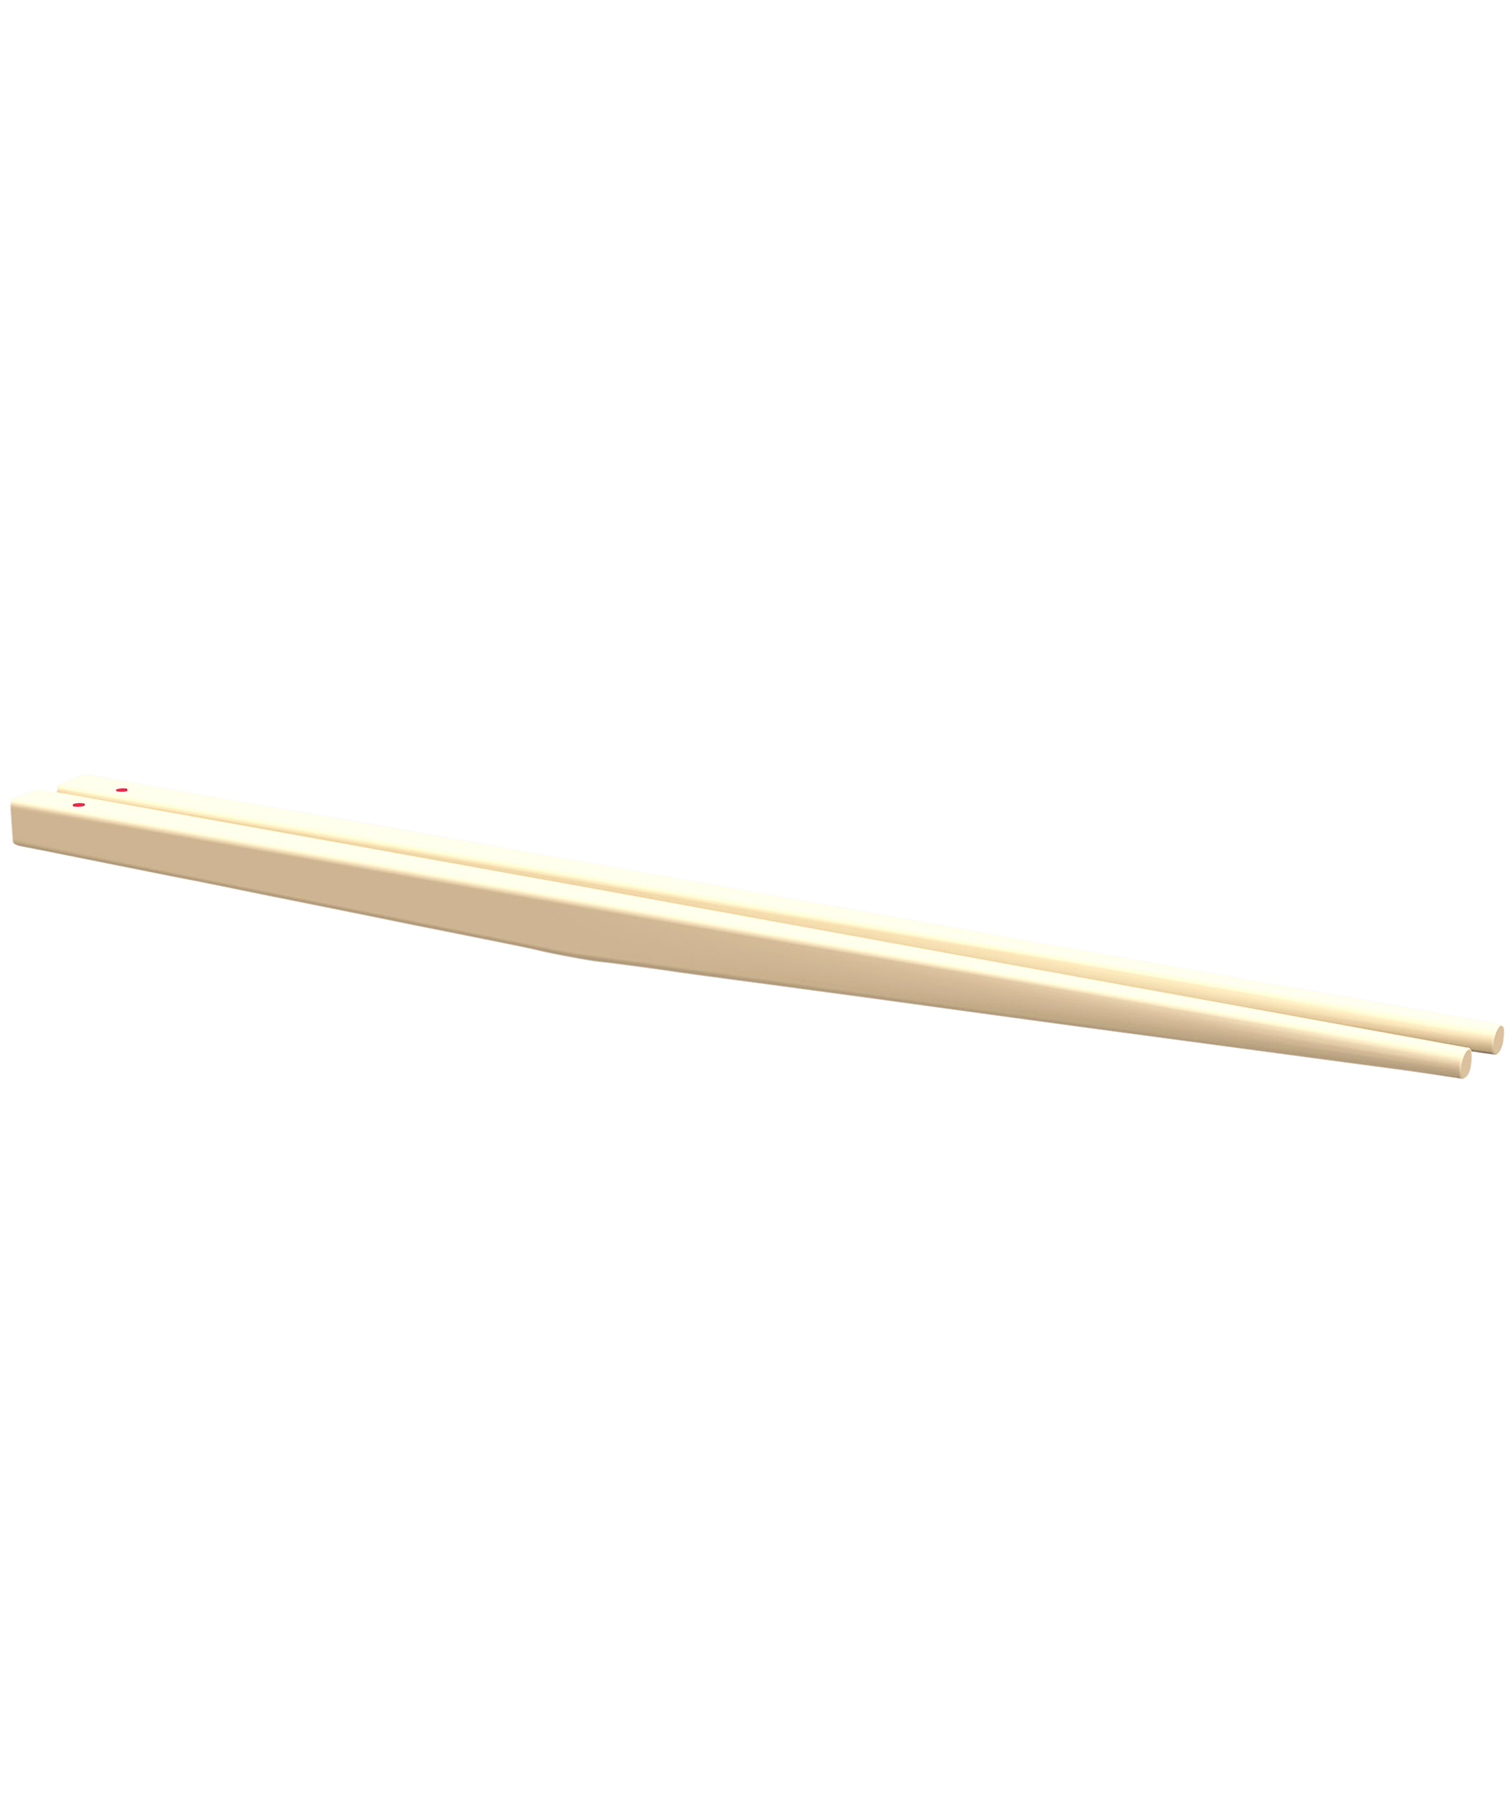 Cantilever Chopsticks